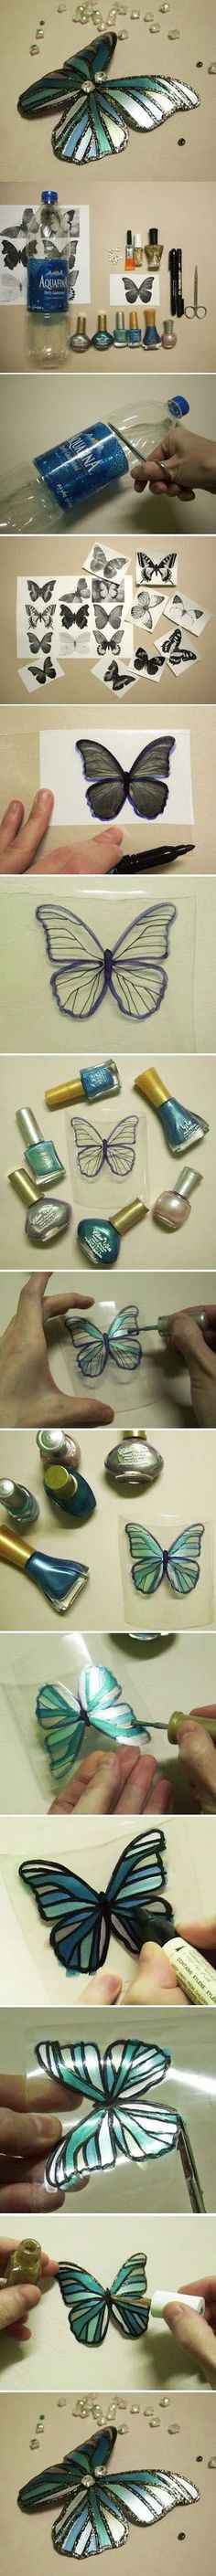 DIY Butterfly /fairy wings with a plastic bottle, fingernail polish, sharpie, glitter and a few glass beads